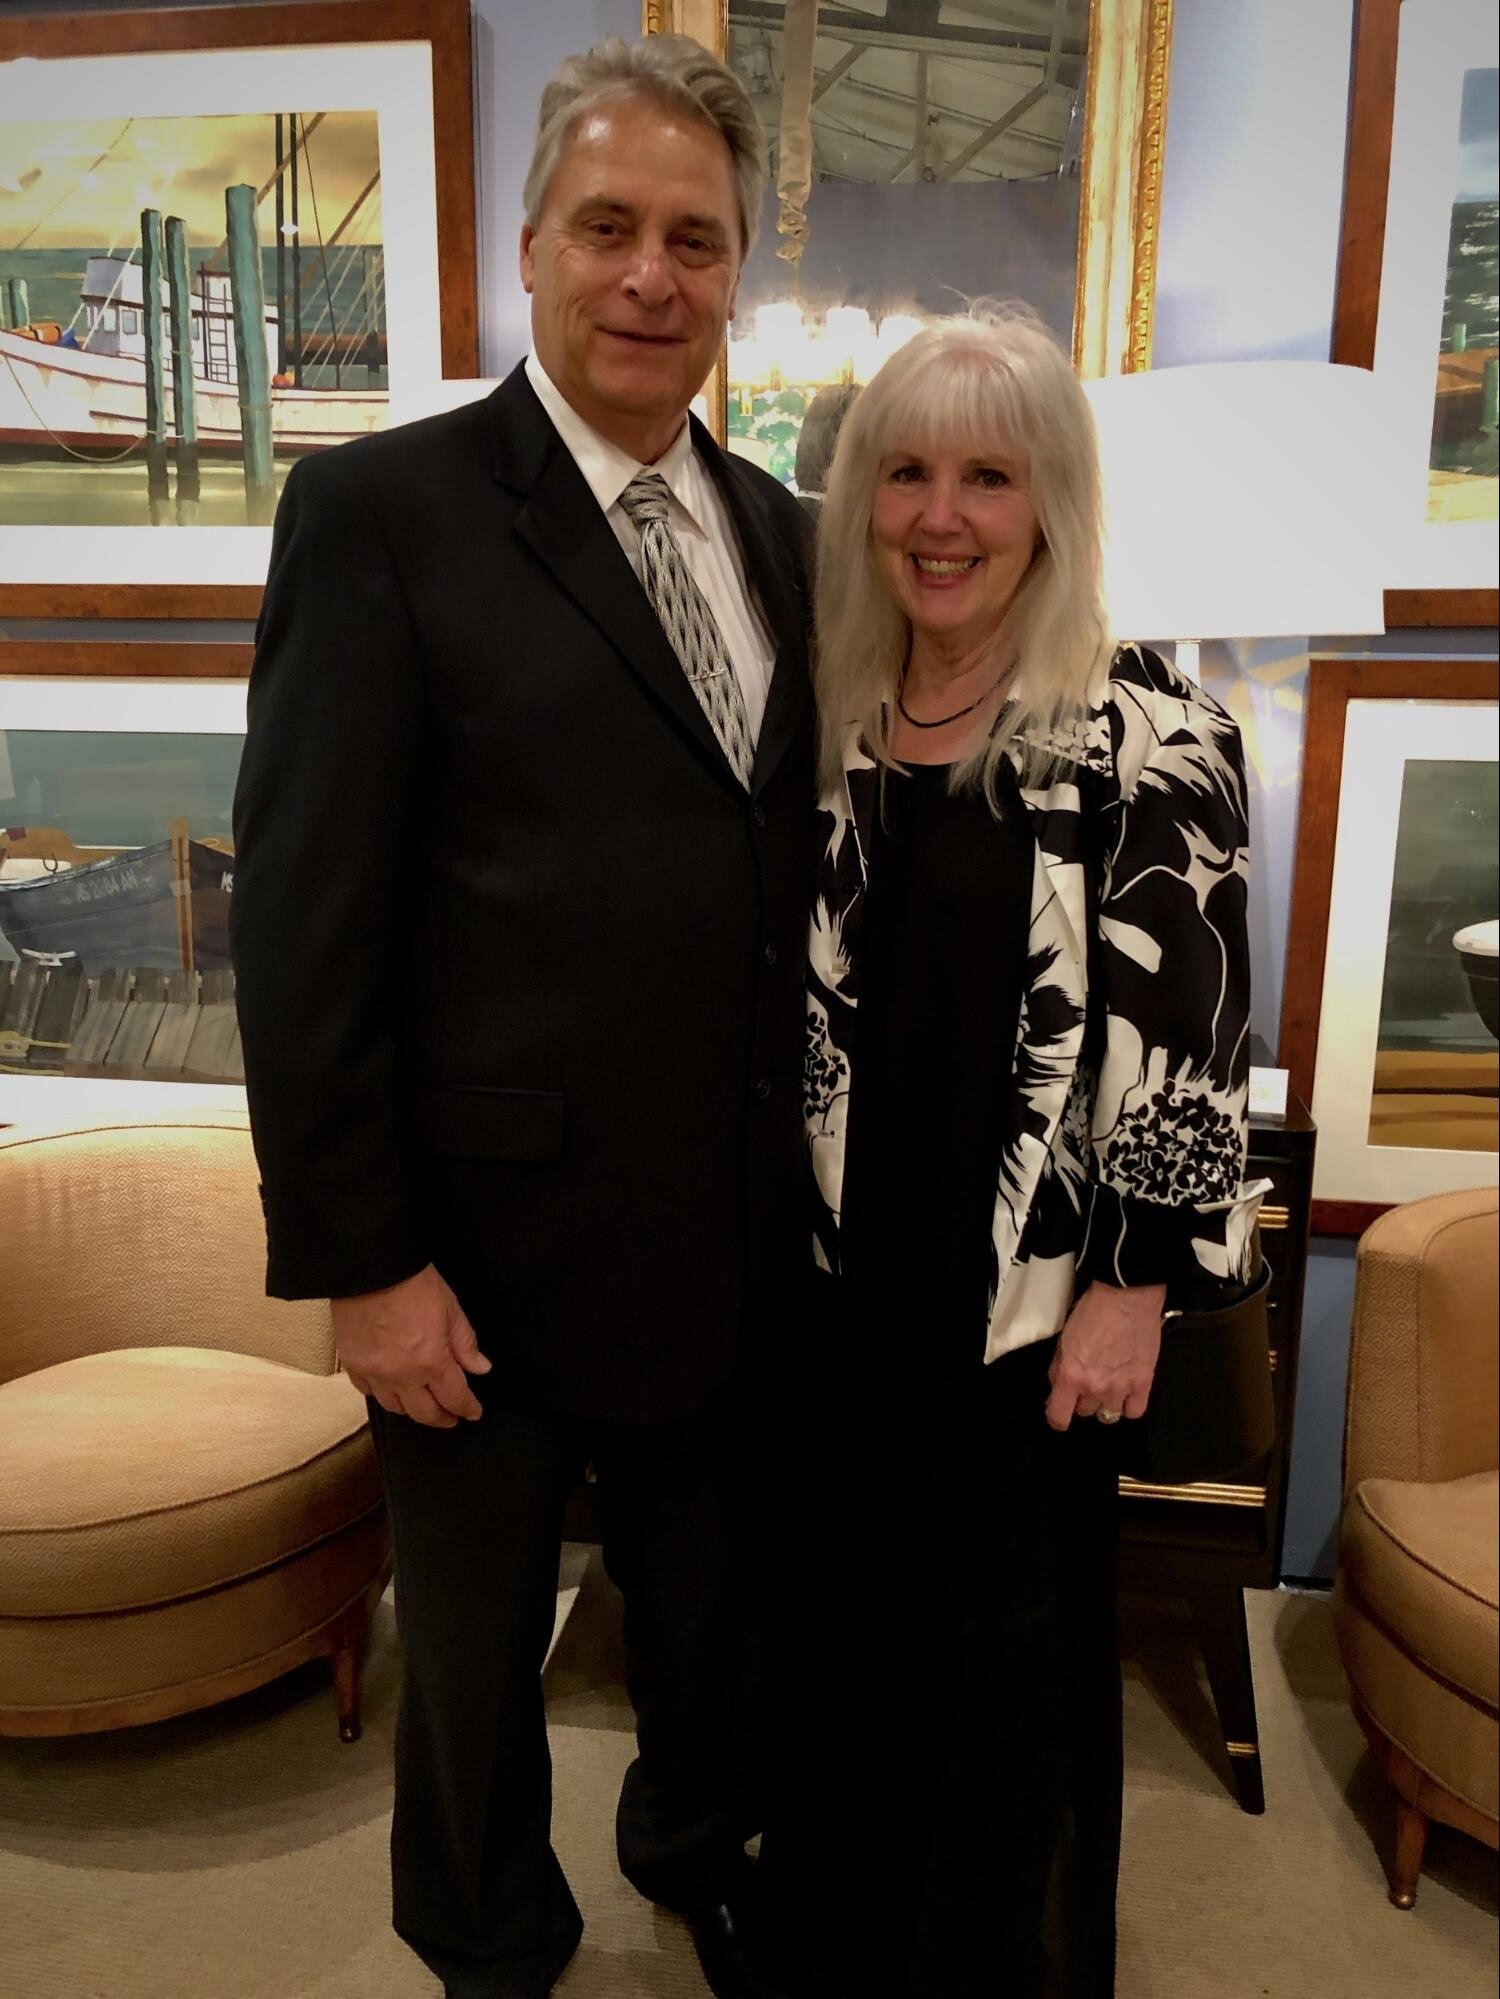 Ed and Missy Westbrook at the Gala. San Francisco's  Epoca  booth provides an elegant backdrop.